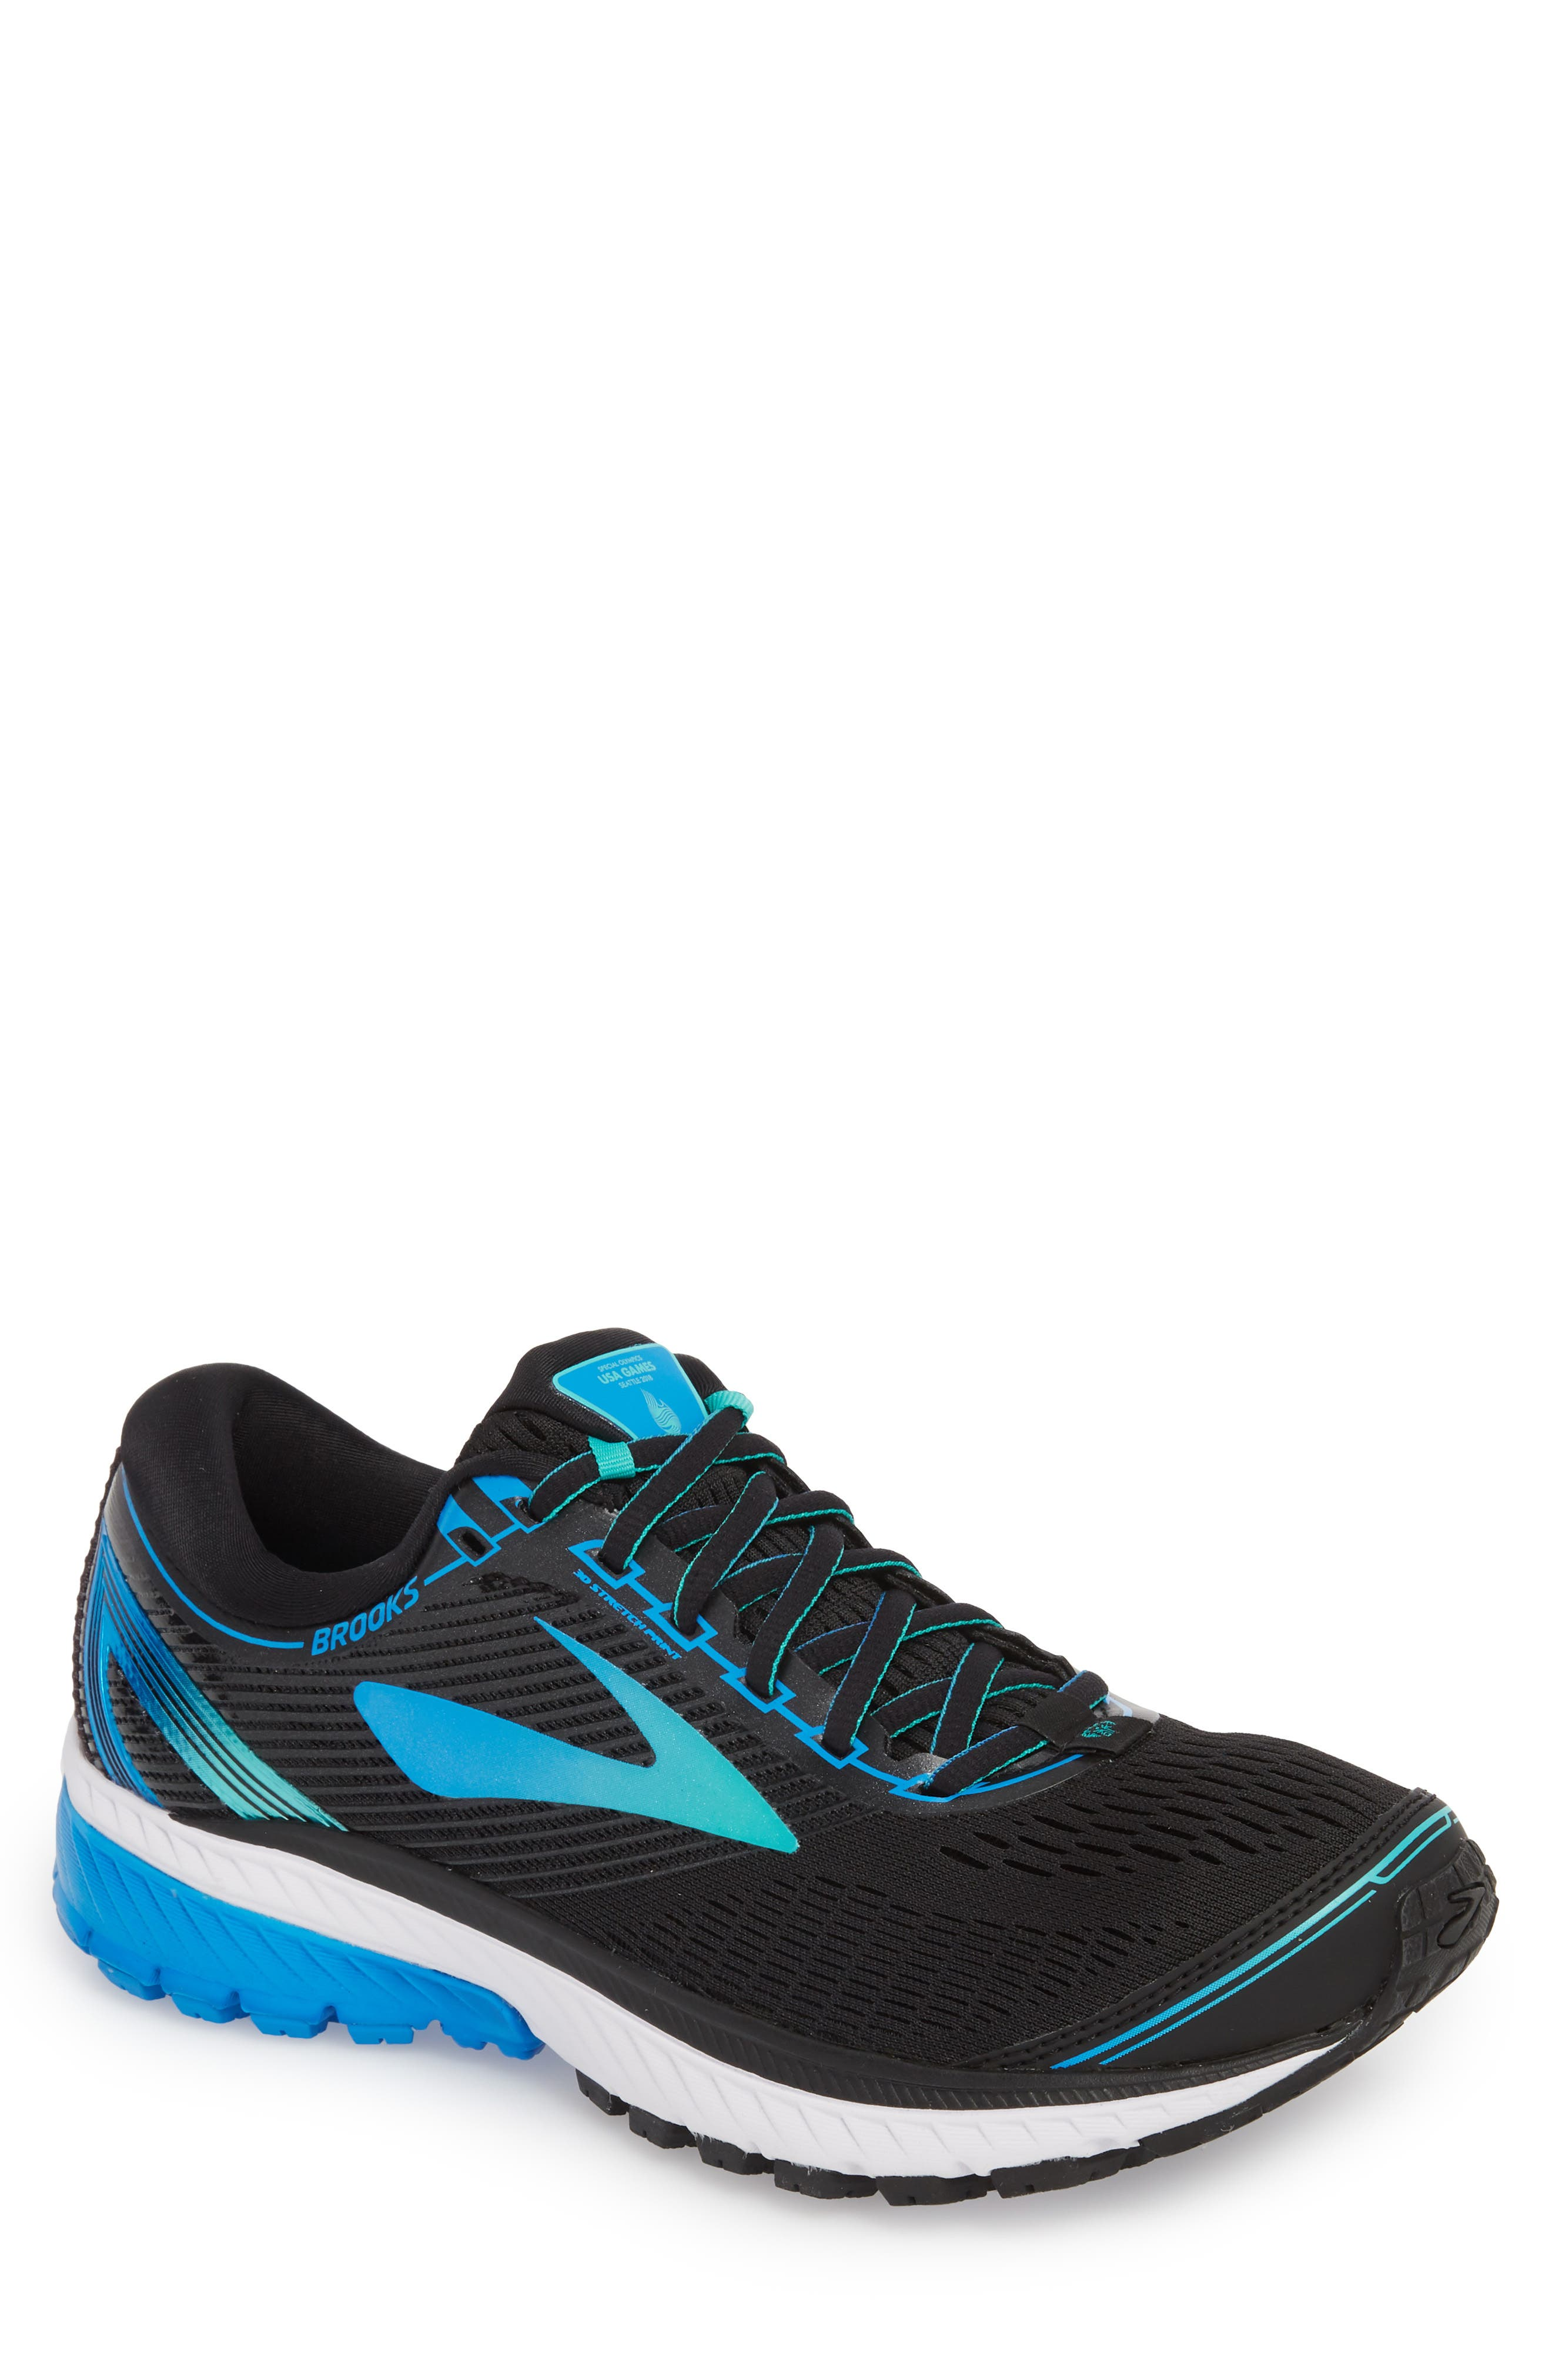 Ghost 10 Running Shoe,                             Main thumbnail 1, color,                             007